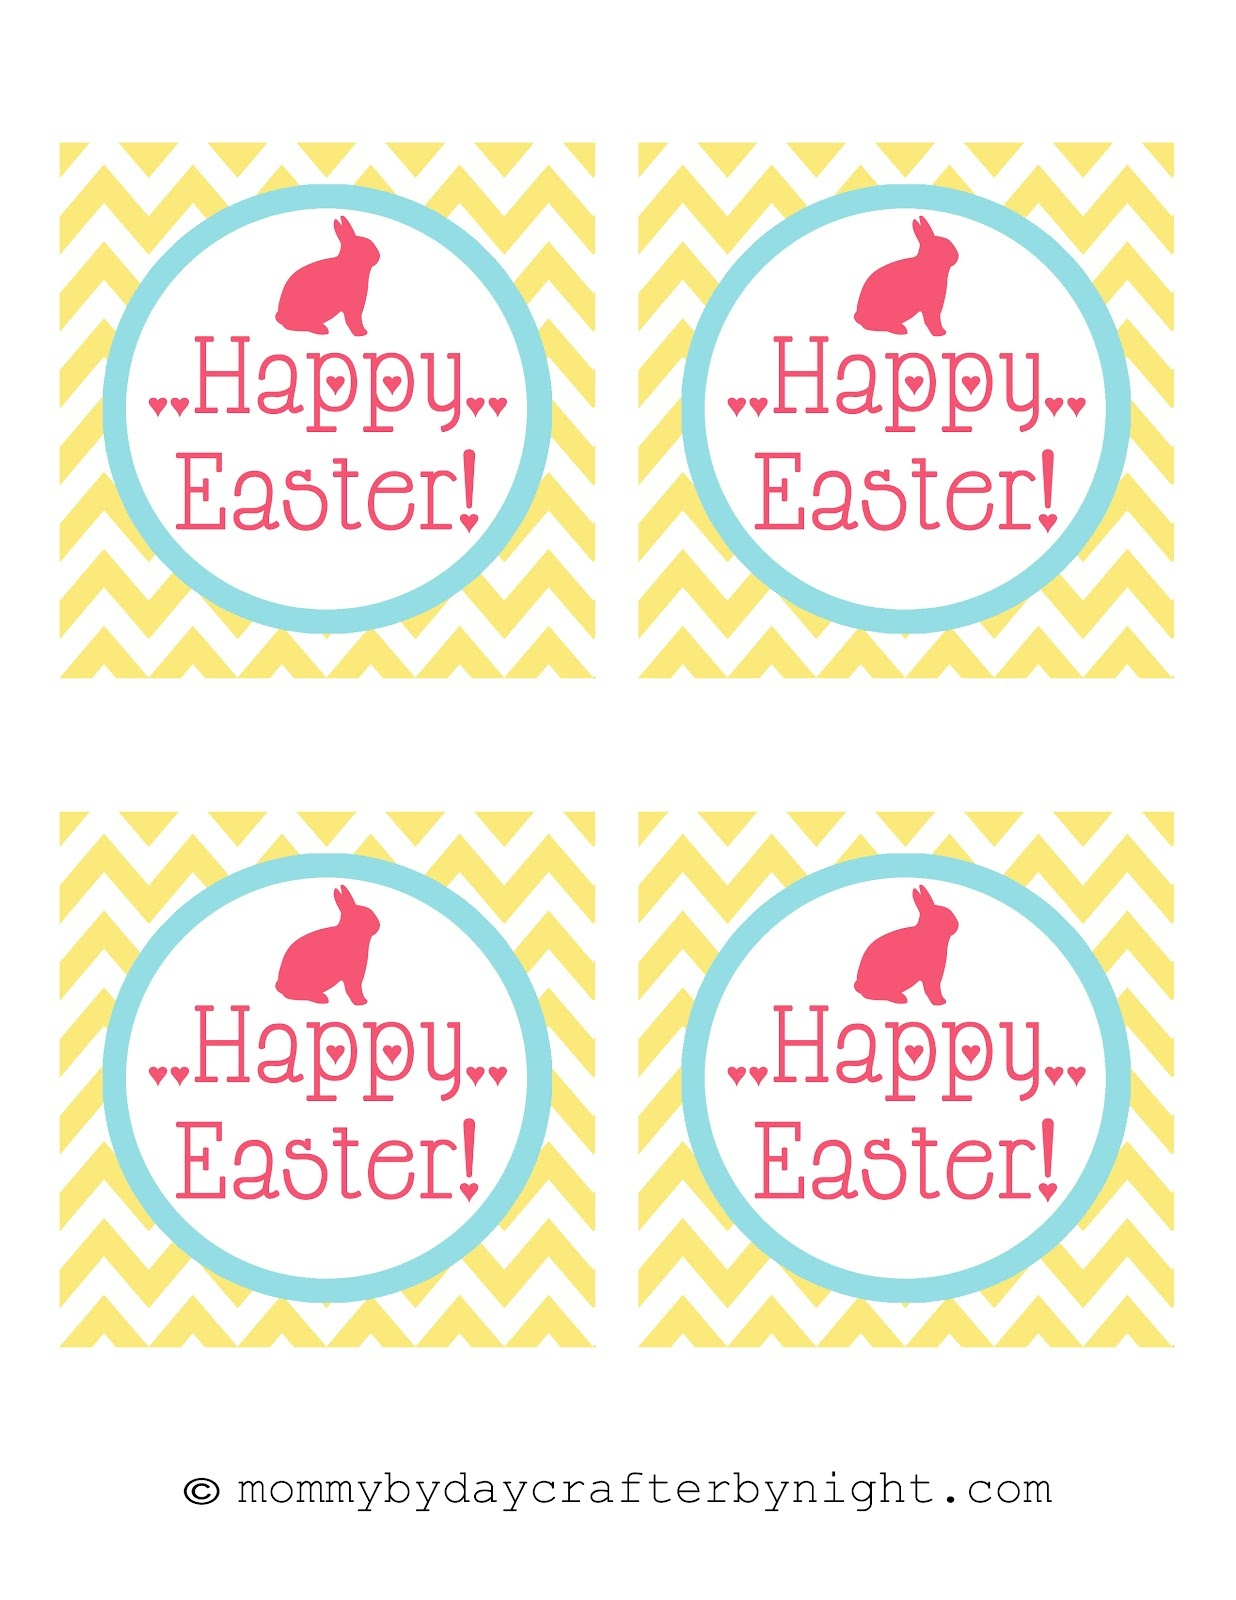 Free Printable Happy Easter Tags – Hd Easter Images - Free Printable Easter Tags